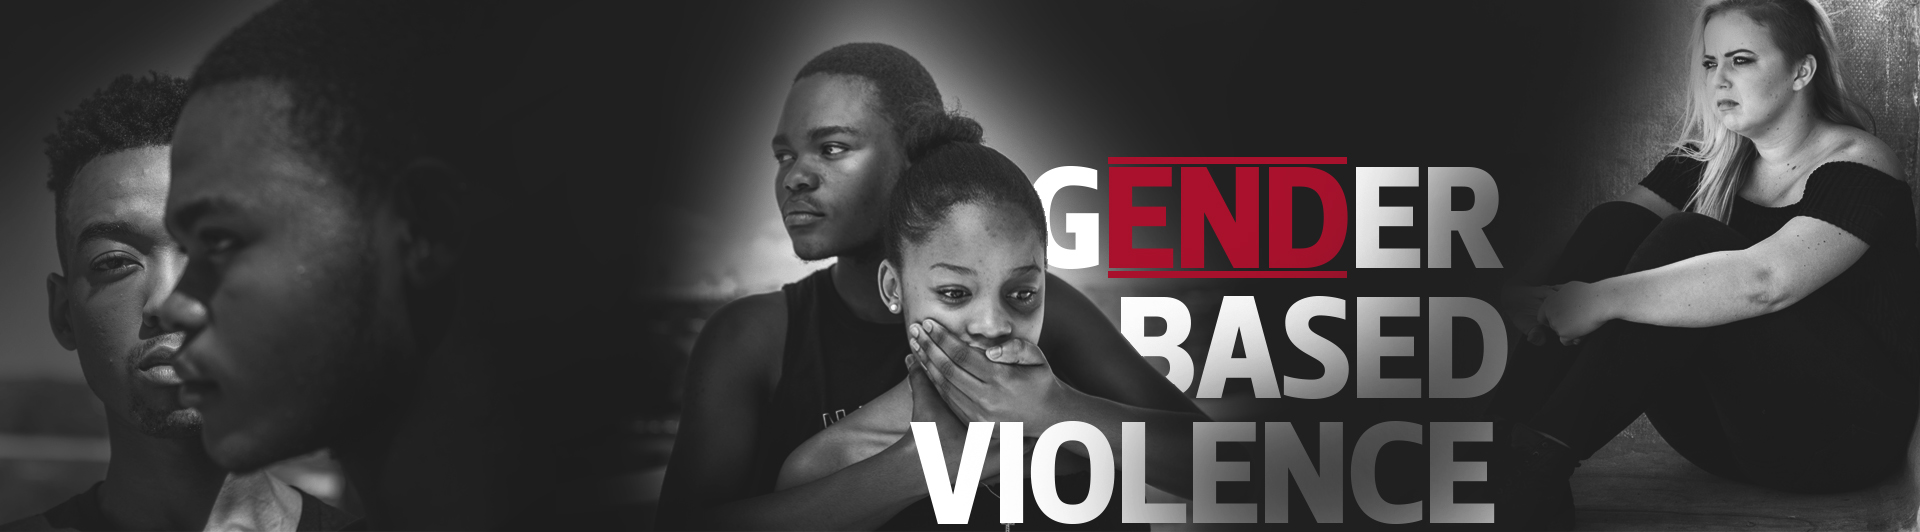 Say No to Gender-Based Violence